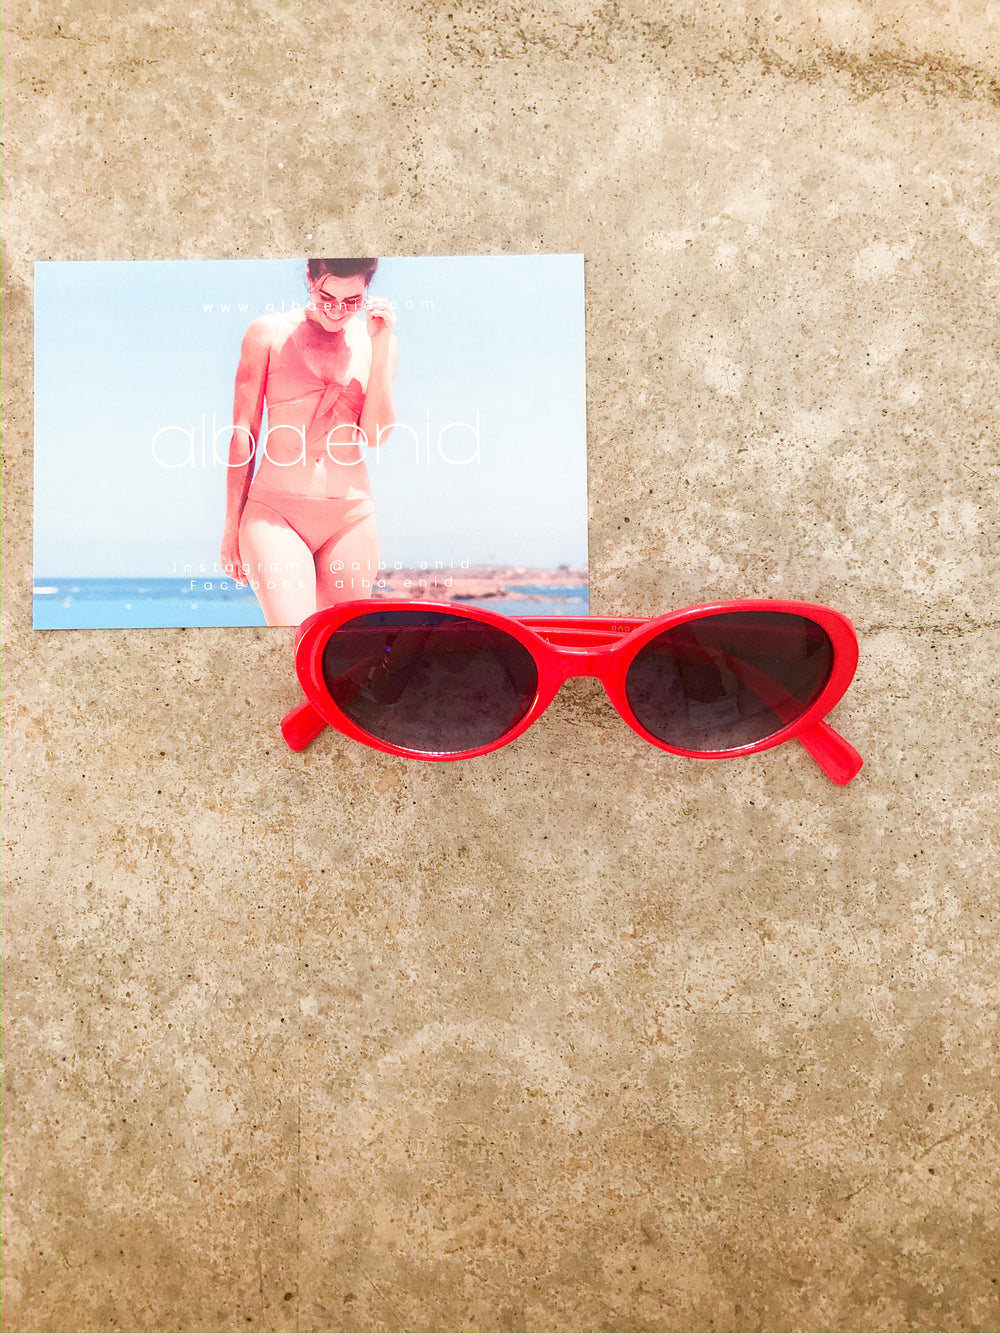 sunnies - twiggy vibes red